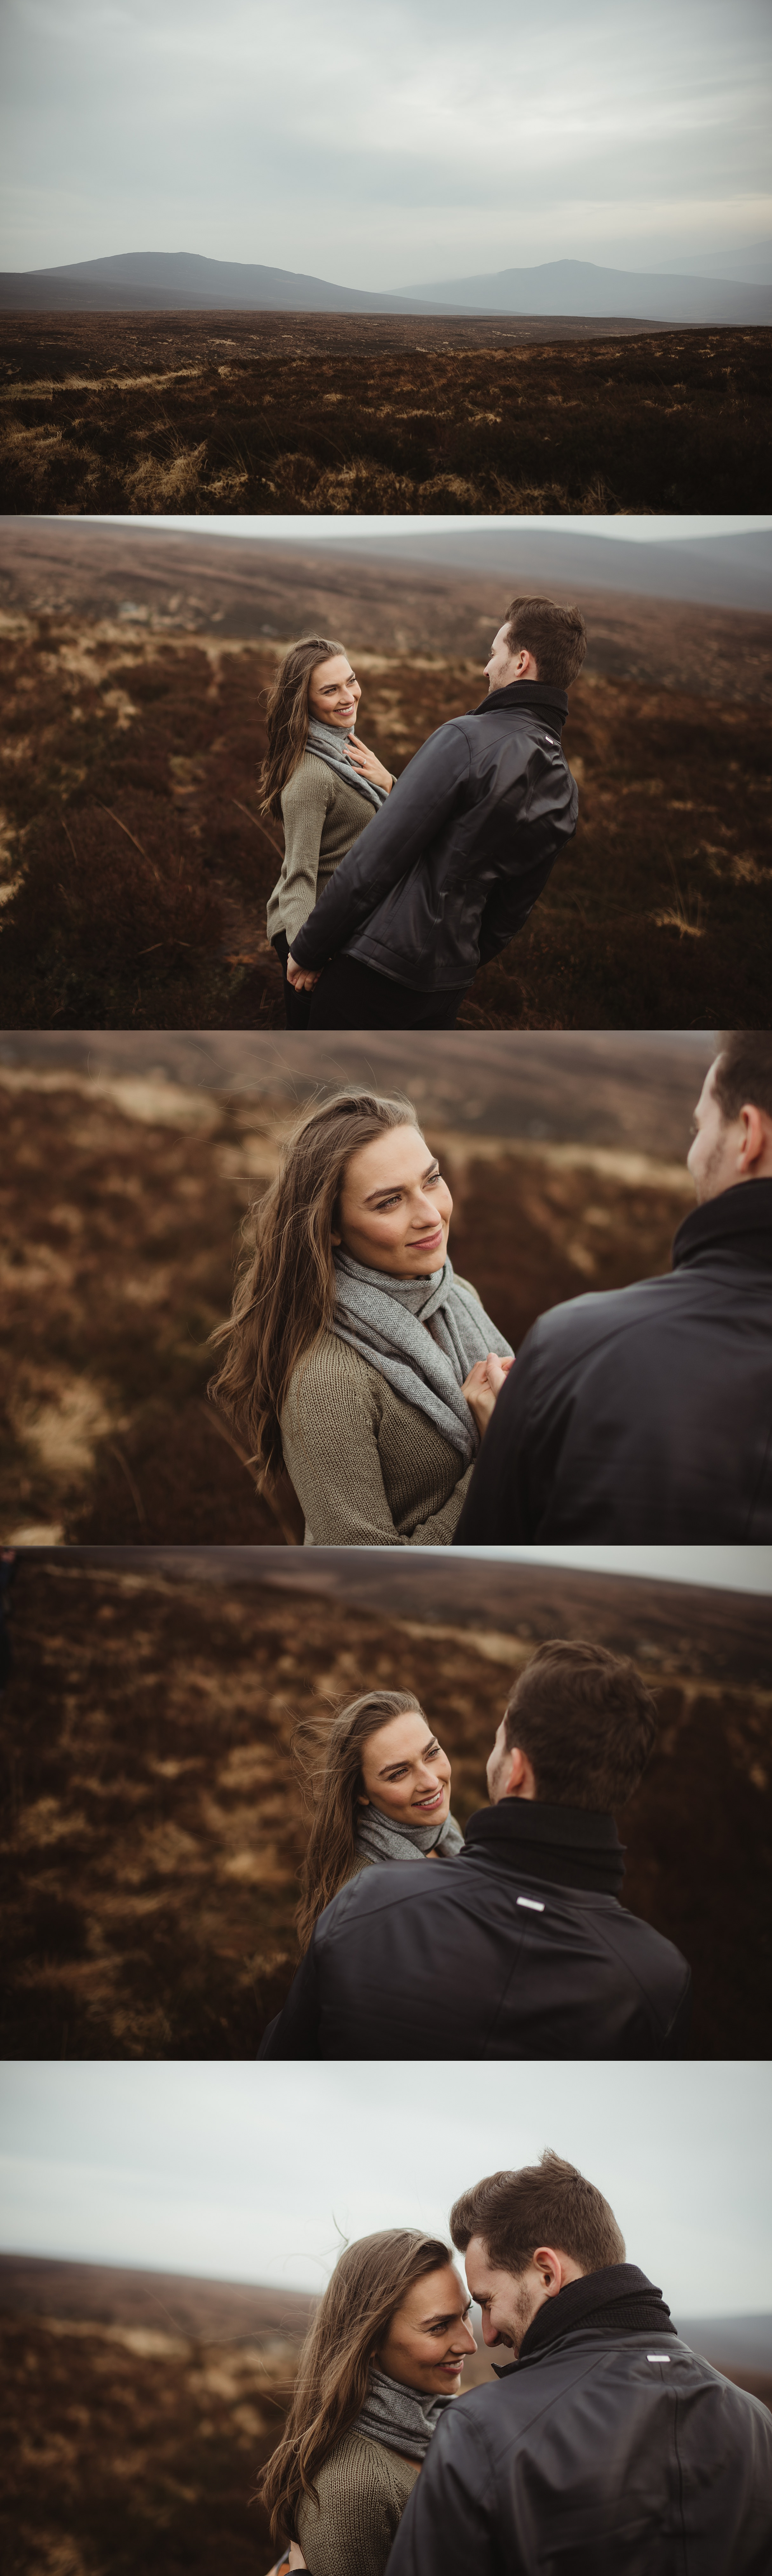 Wicklow-Mountains-Engagement-Dublin-Photographer-Session-55.jpg